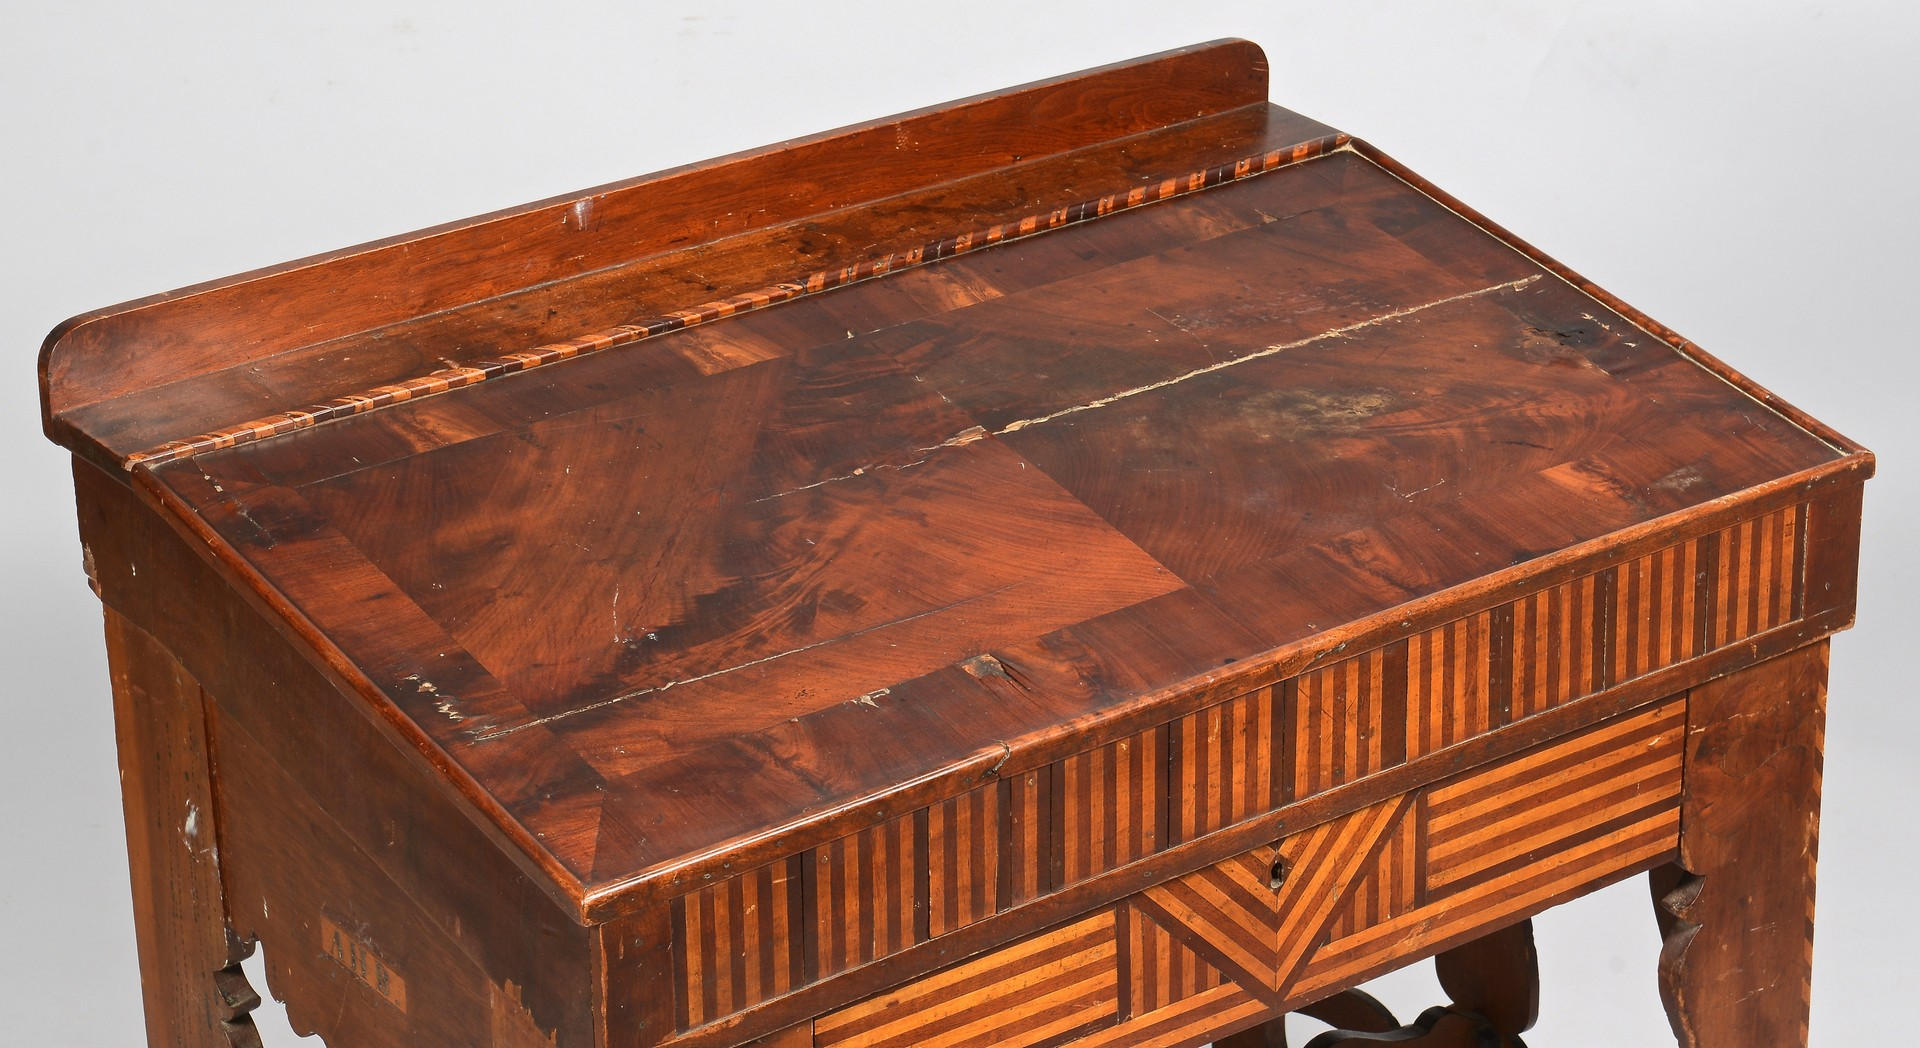 Lot 105: 1851 KY Inlaid and Carved Desk, Signed